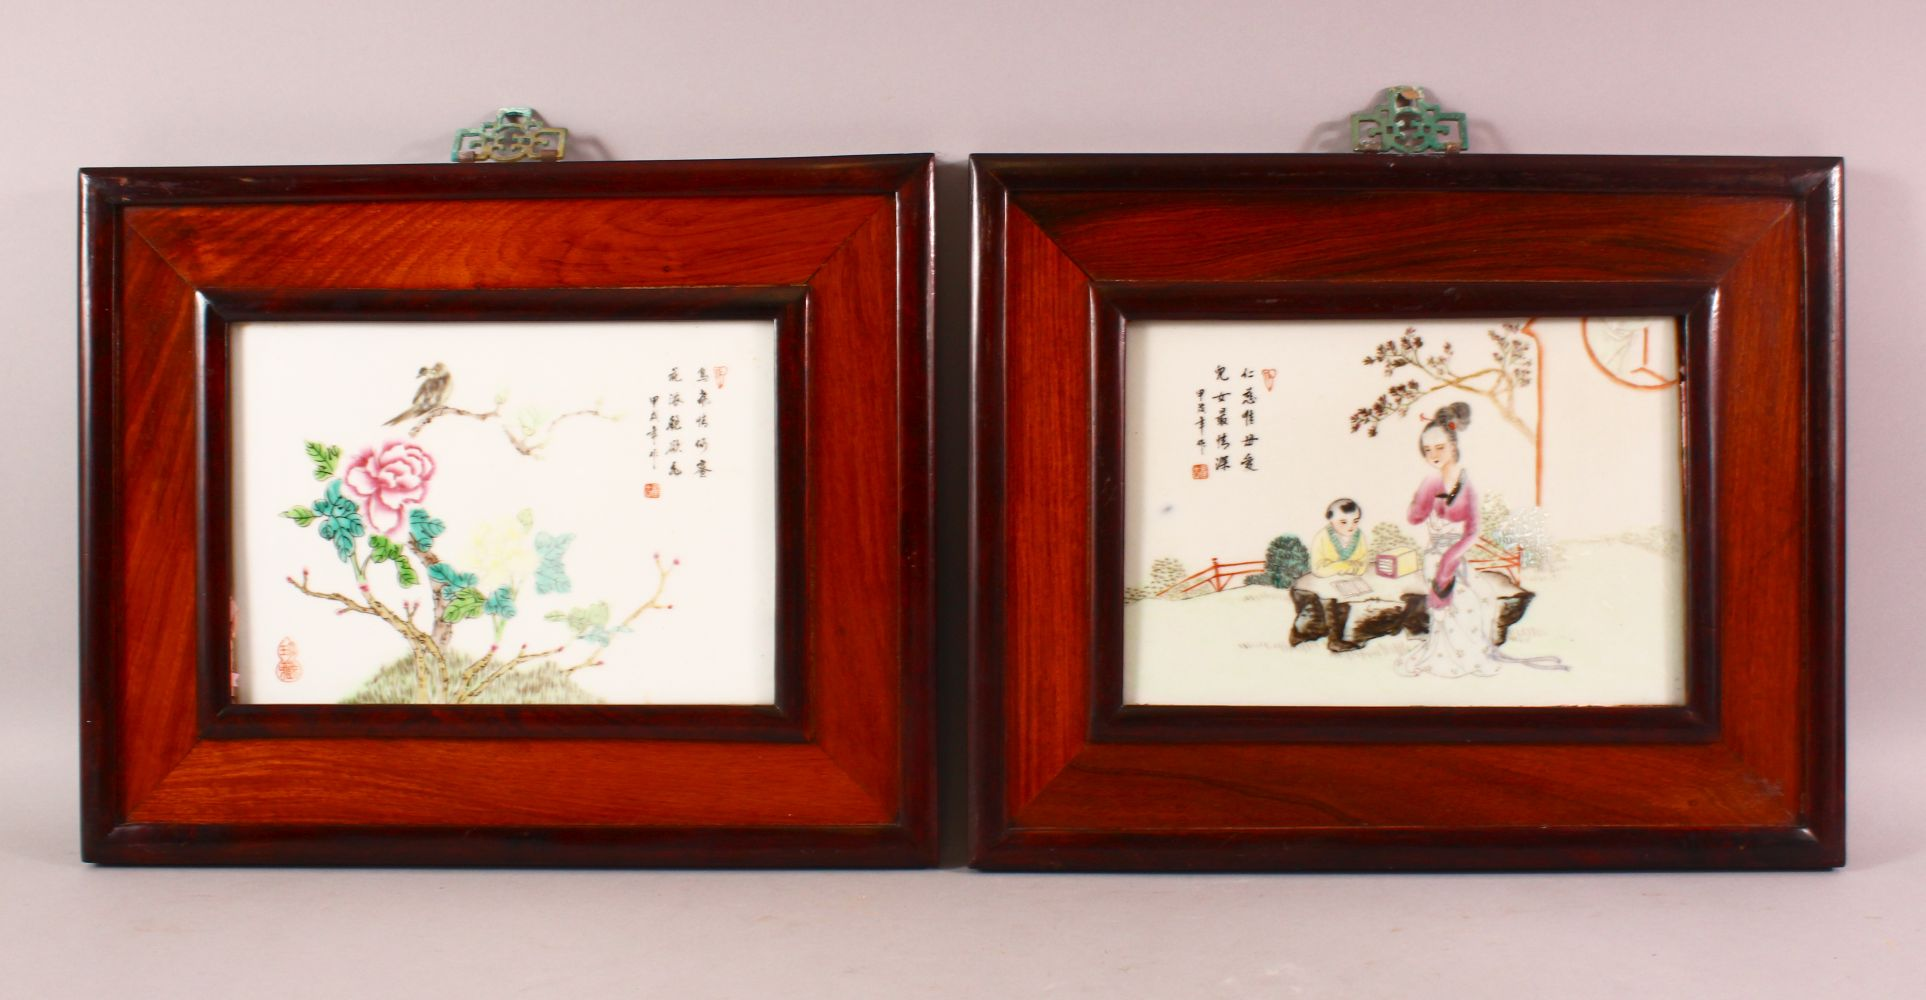 A PAIR OF CHINESE FAMILLE ROSE PORCELAIN PANELS, depicting birds and flora, mother and child, each